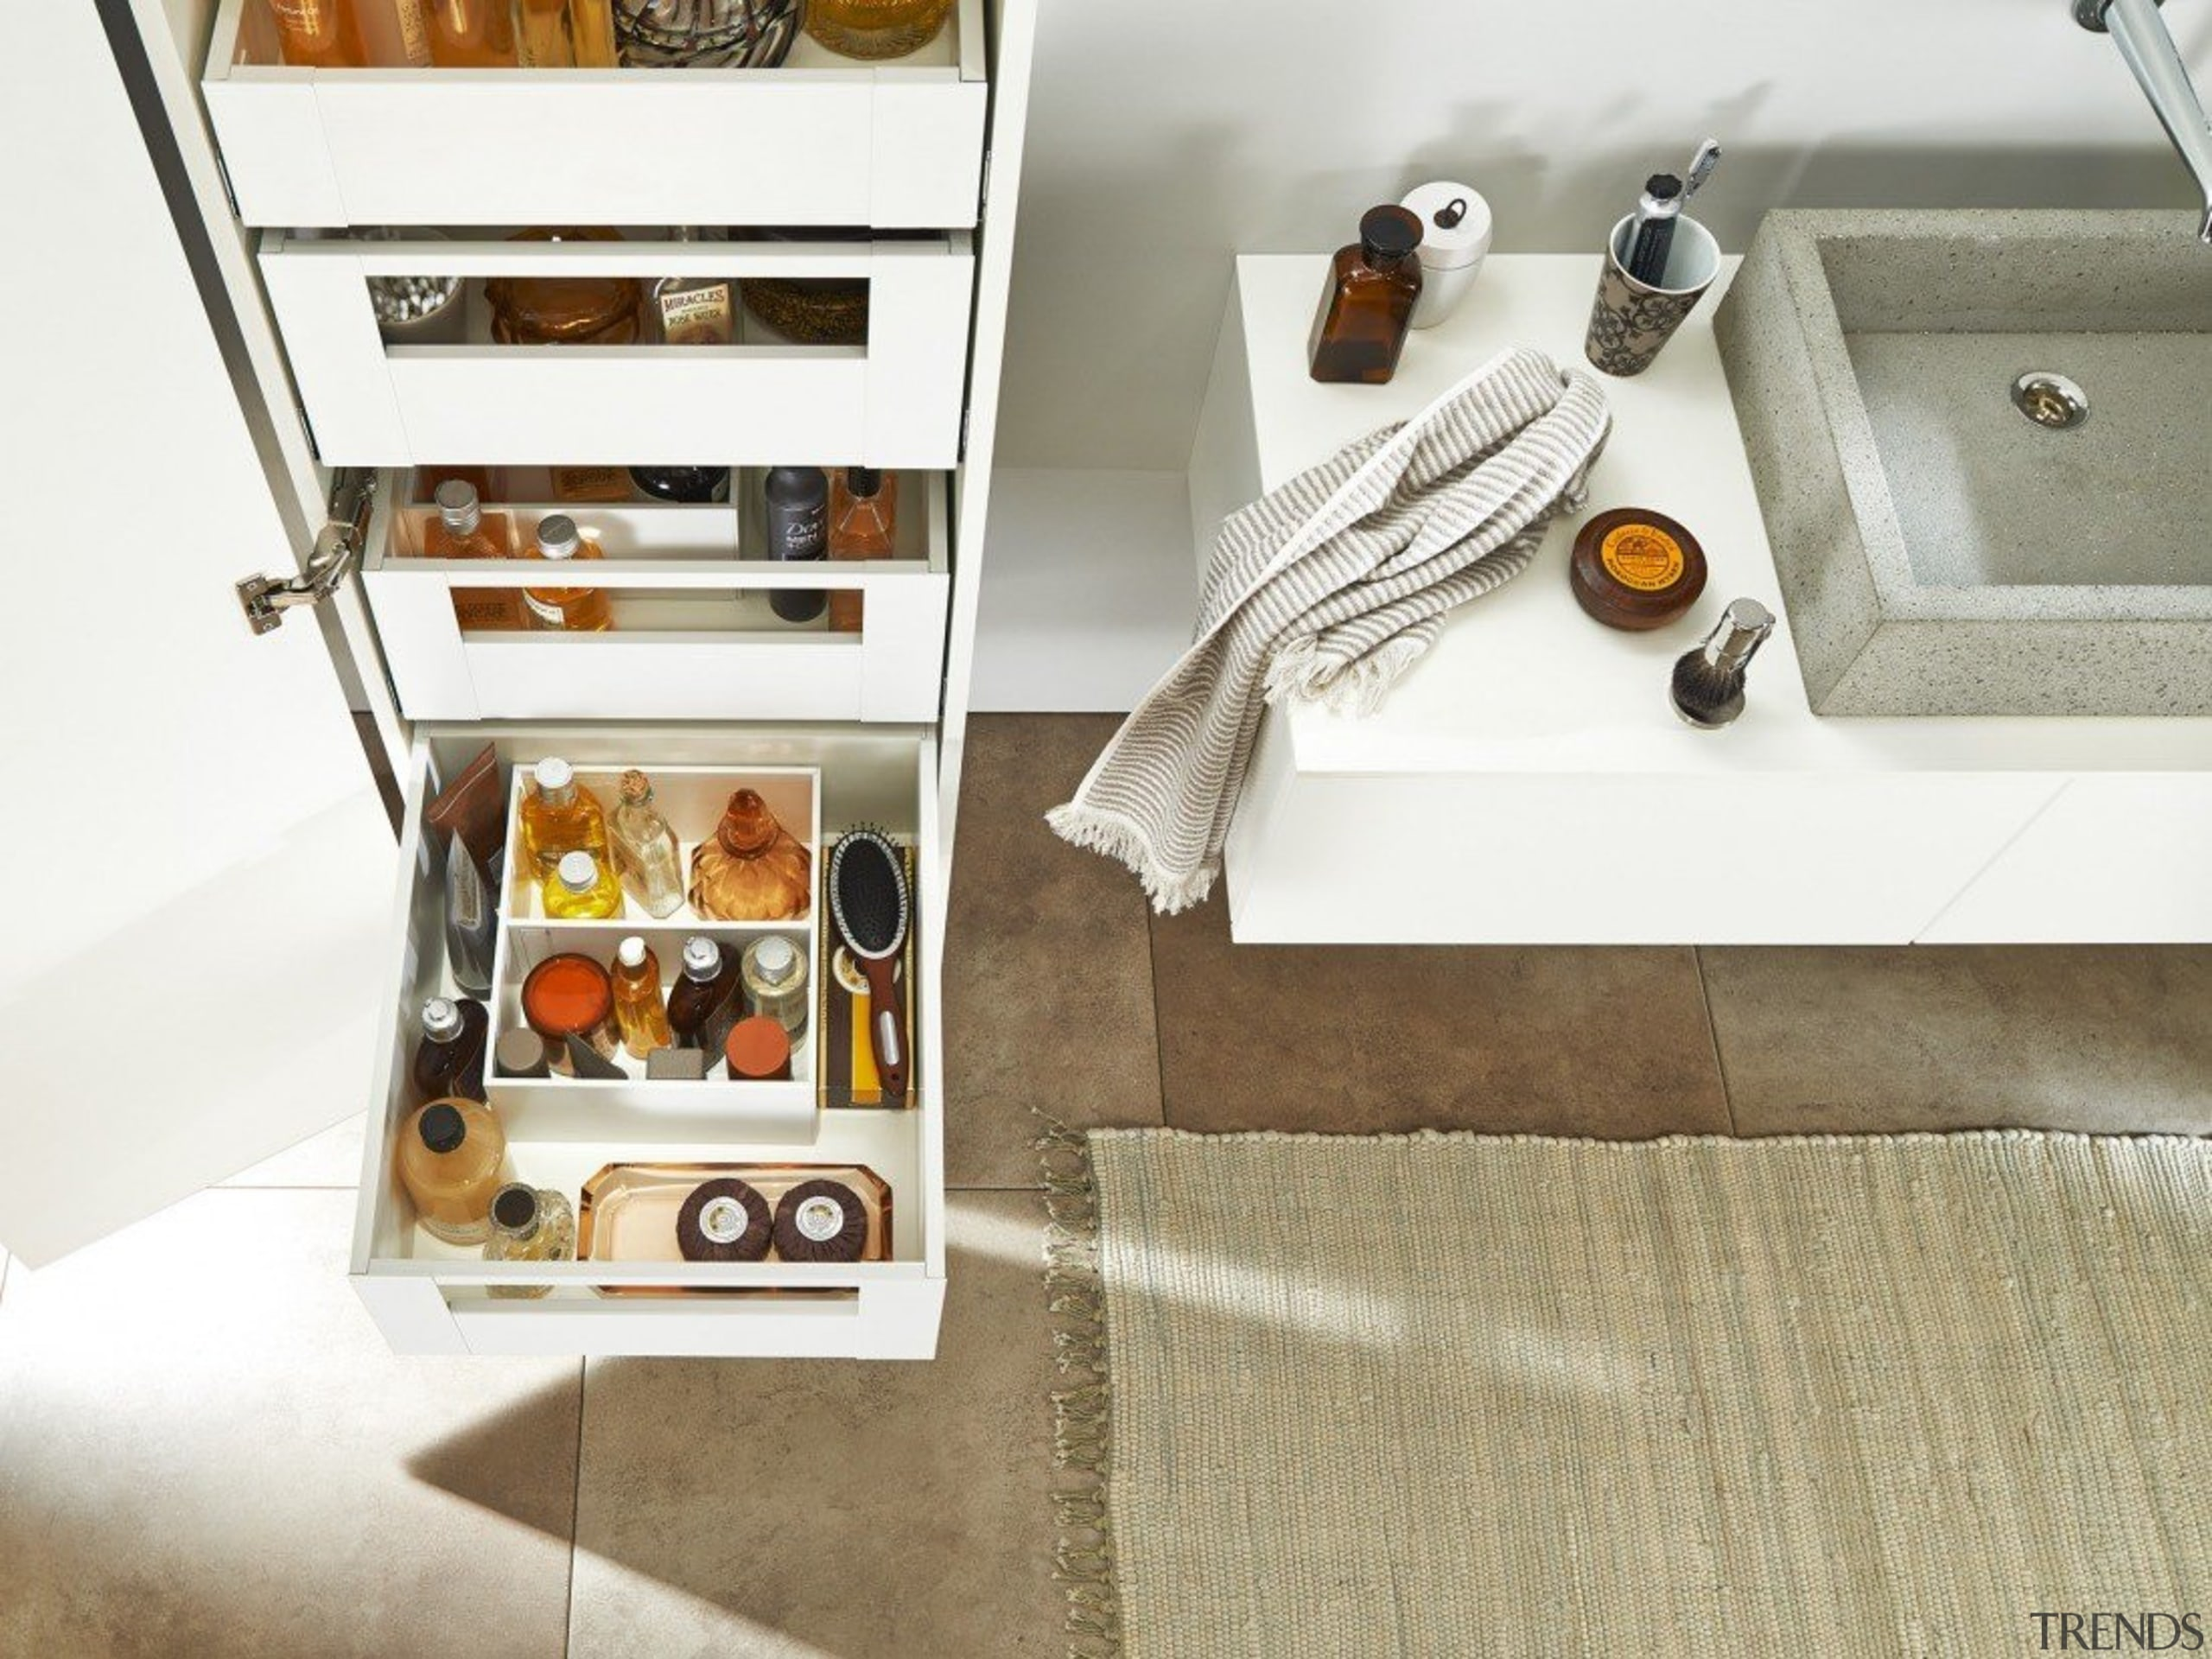 AMBIA-LINE inner dividing system – organization at its floor, flooring, furniture, white